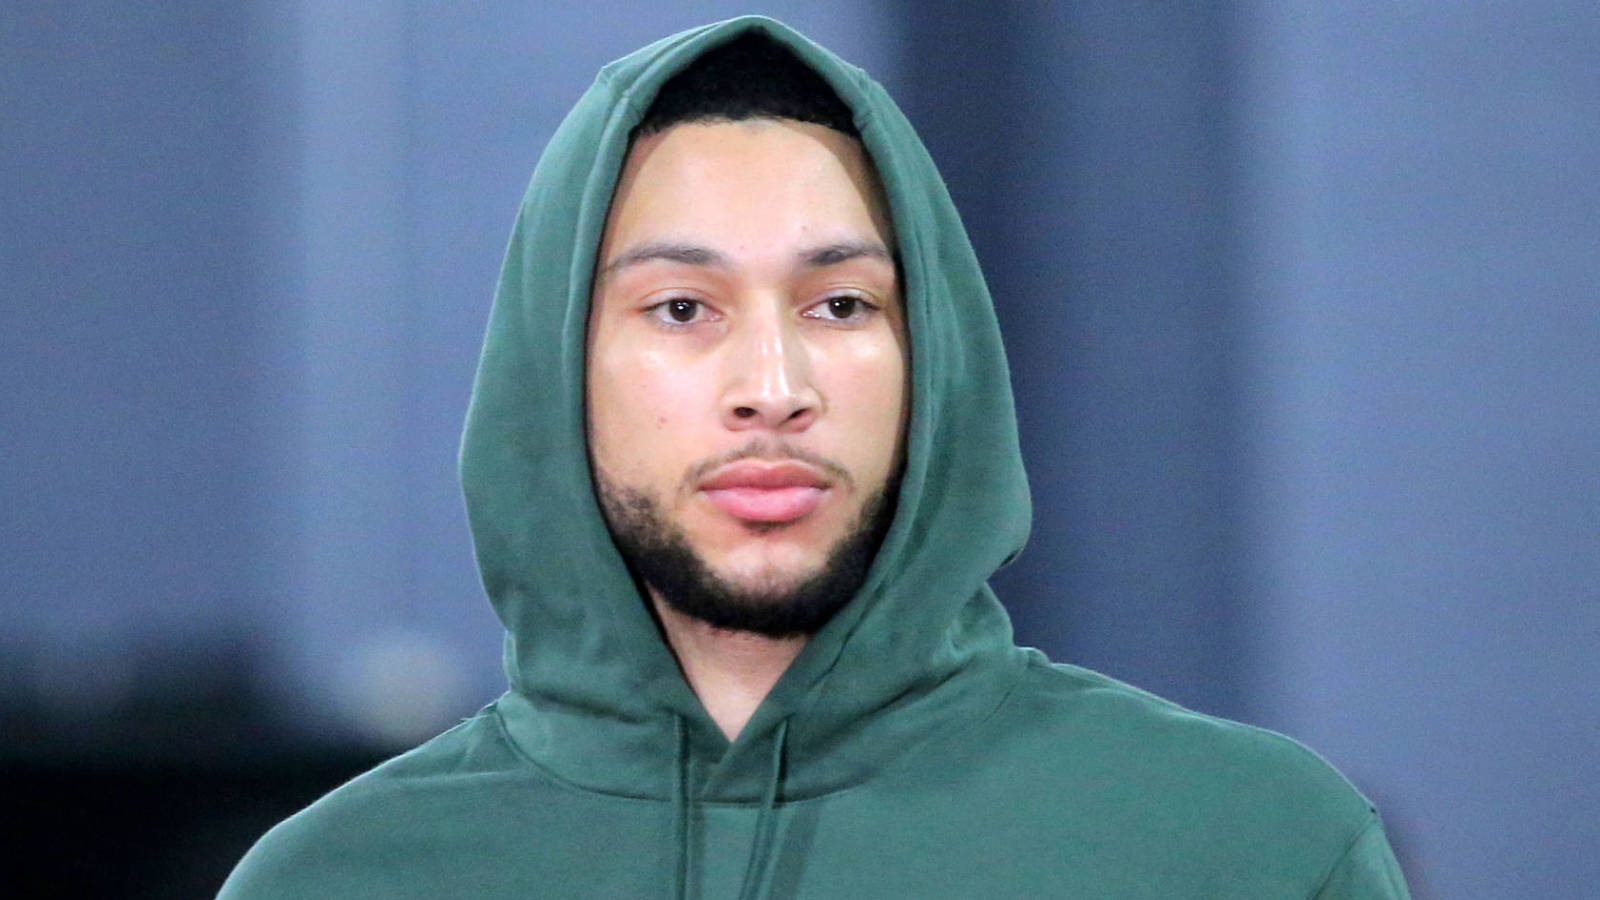 """Photo of Wearing an """"I Can't Breathe"""" Shirt, Ben Simmons Calls for """"Blatant Racism"""""""